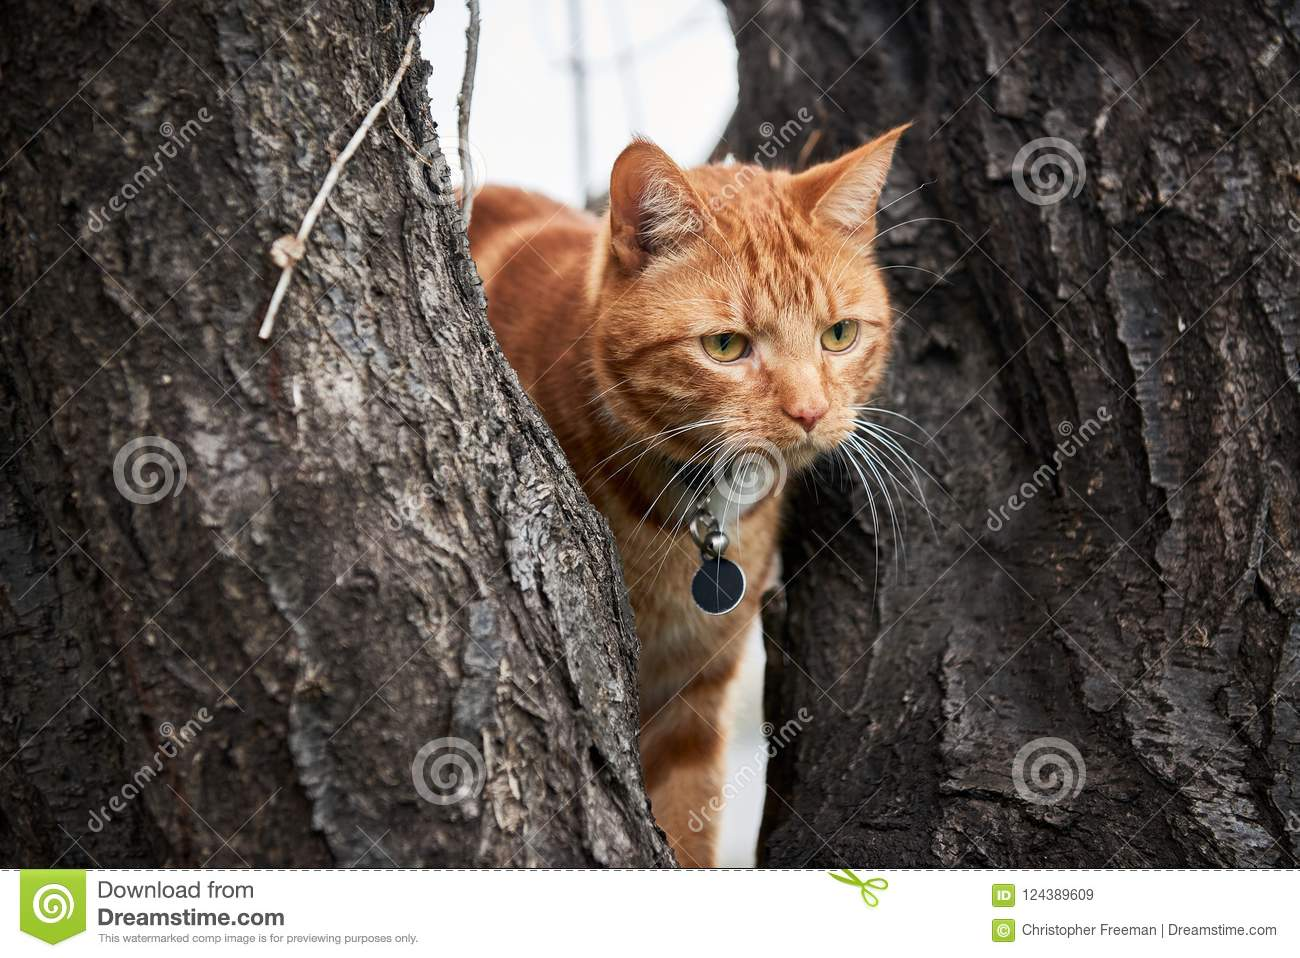 Ginger red tabby cat in a tree with long white whiskers up in a tree.